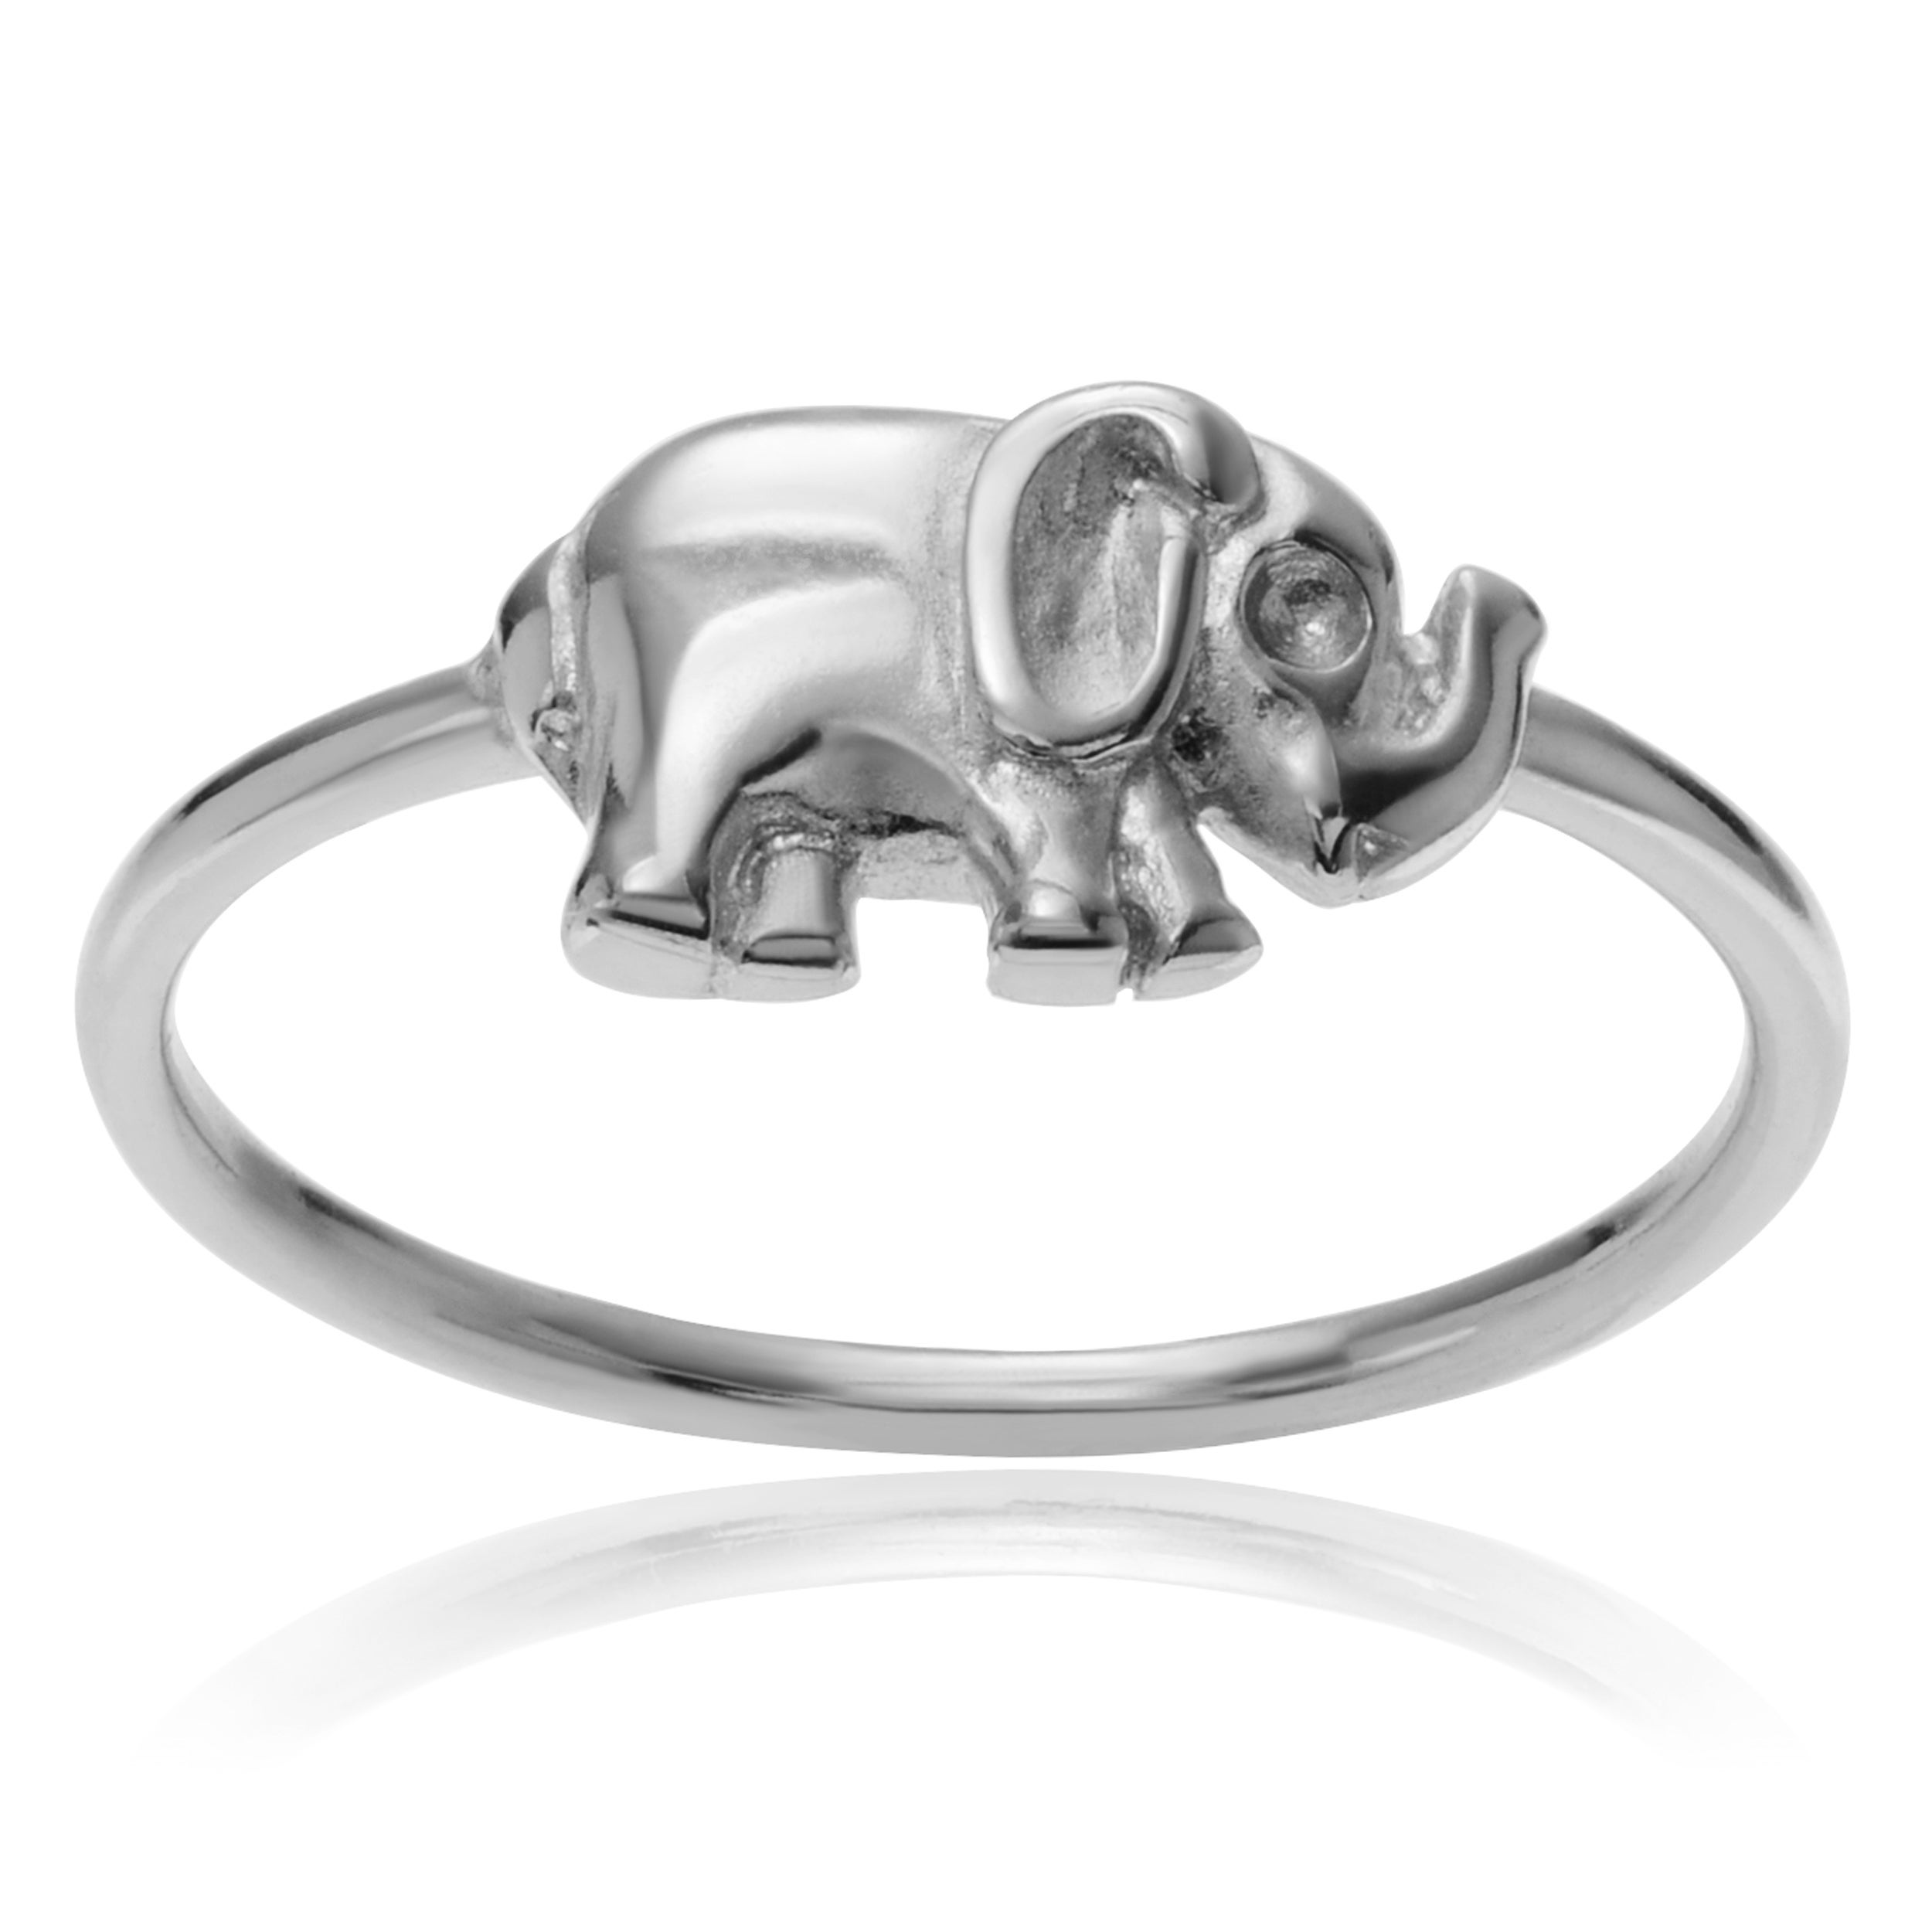 handmade watches elephant over figure hindu god free silver engagement overstock jewelry shipping sterling ring on ganesh product rings orders thailand